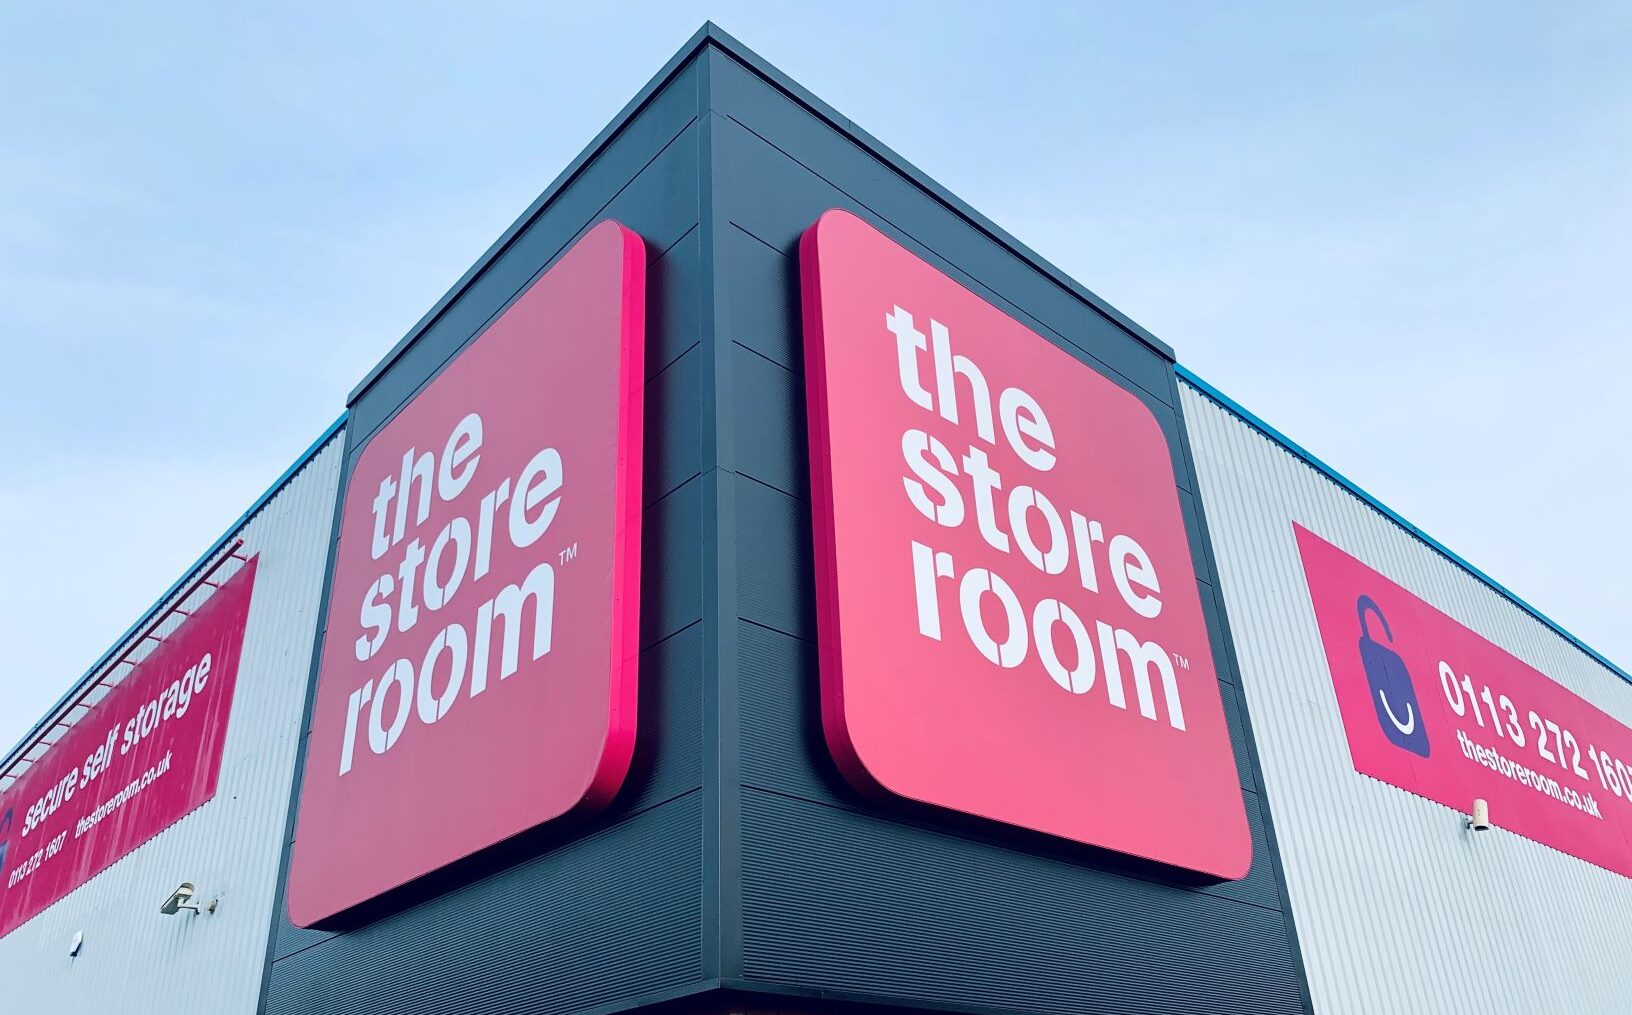 The Store Room self storage facility Leeds